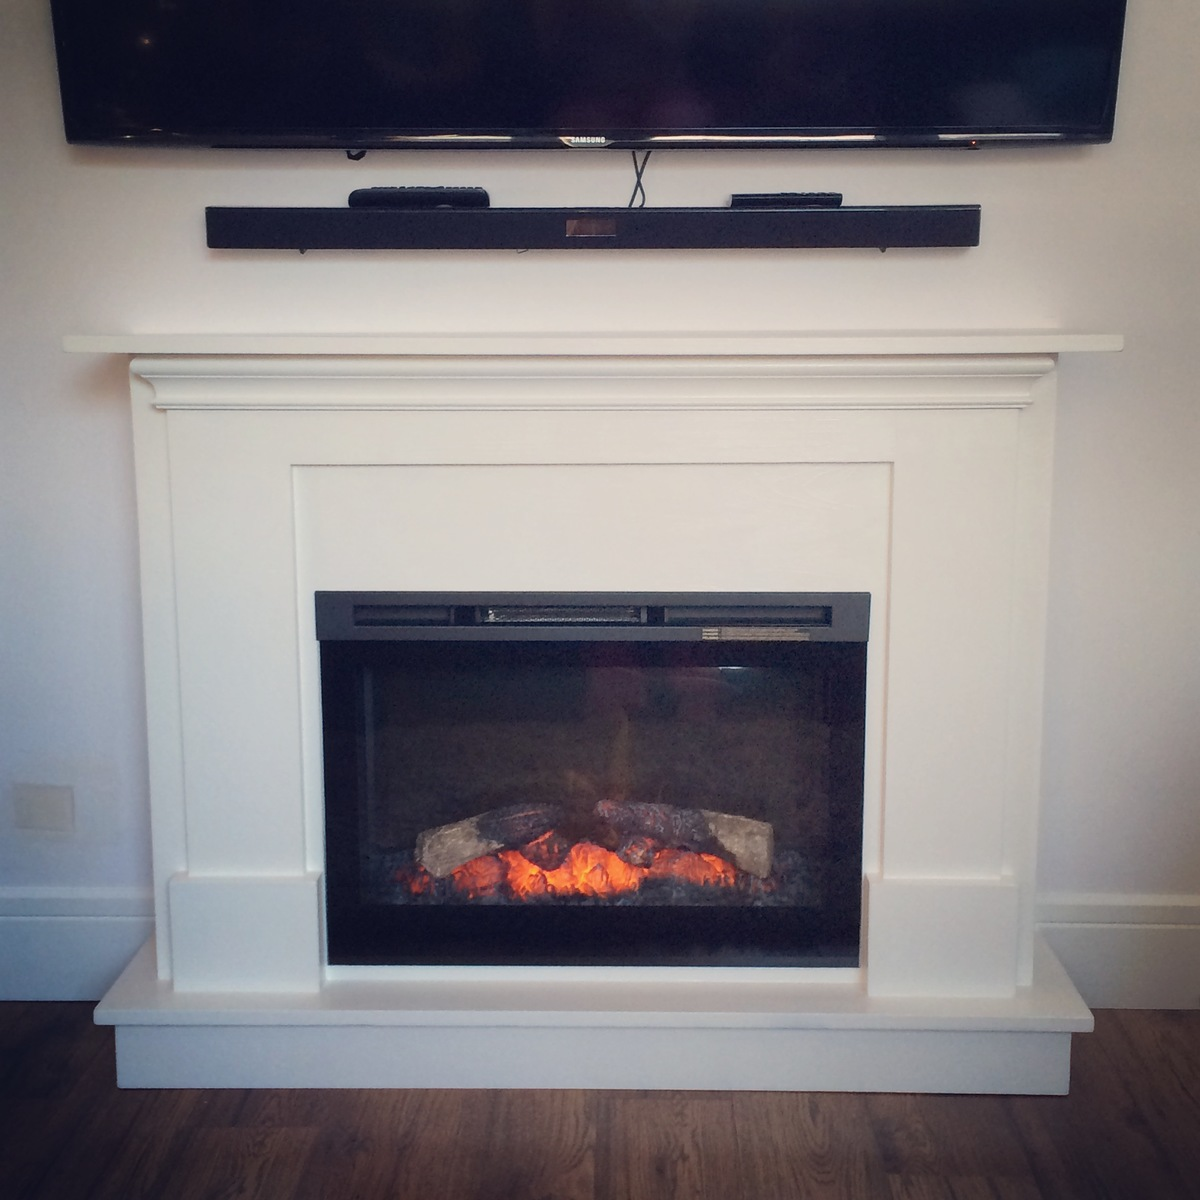 ana white electric fireplace surround and mantel diy projects rh ana white com fireplace surround depth fireplace surround design plans